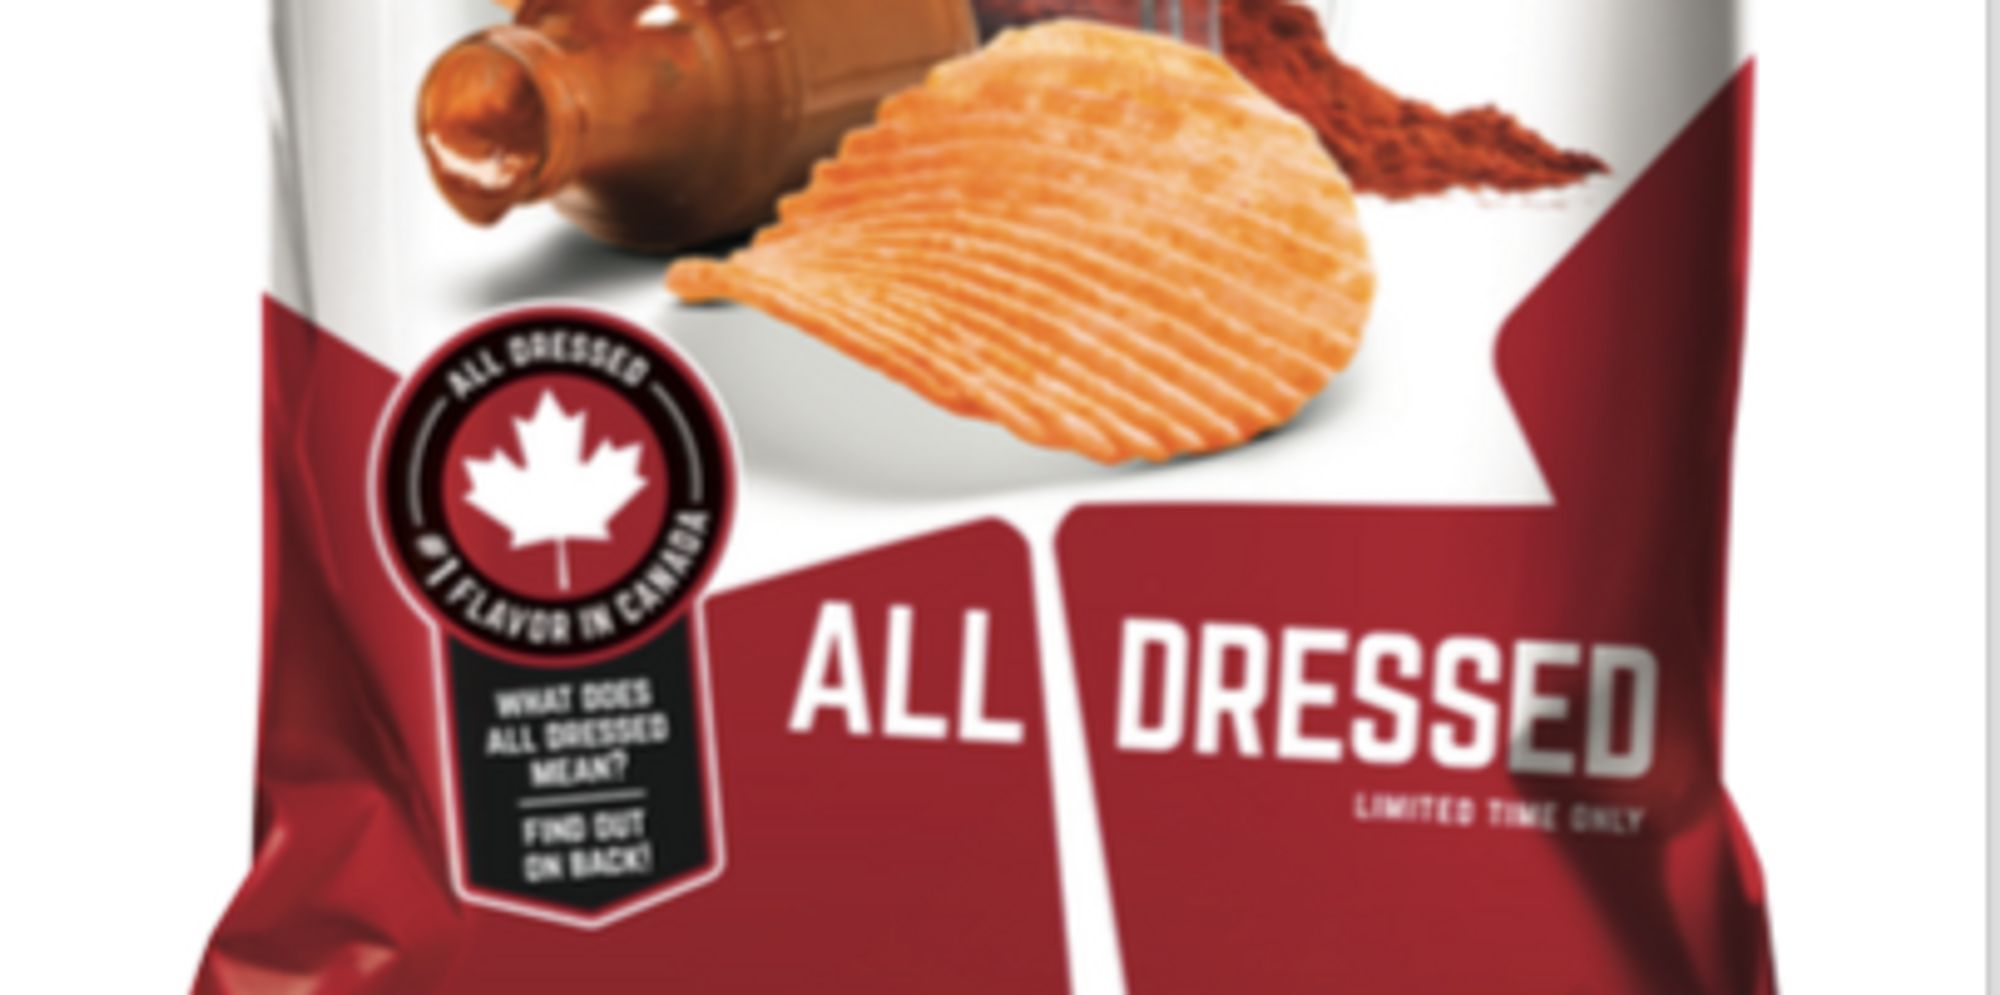 canadian cult favorite all dressed chips hit u s for limited canadian cult favorite all dressed chips hit u s for limited time the huffington post